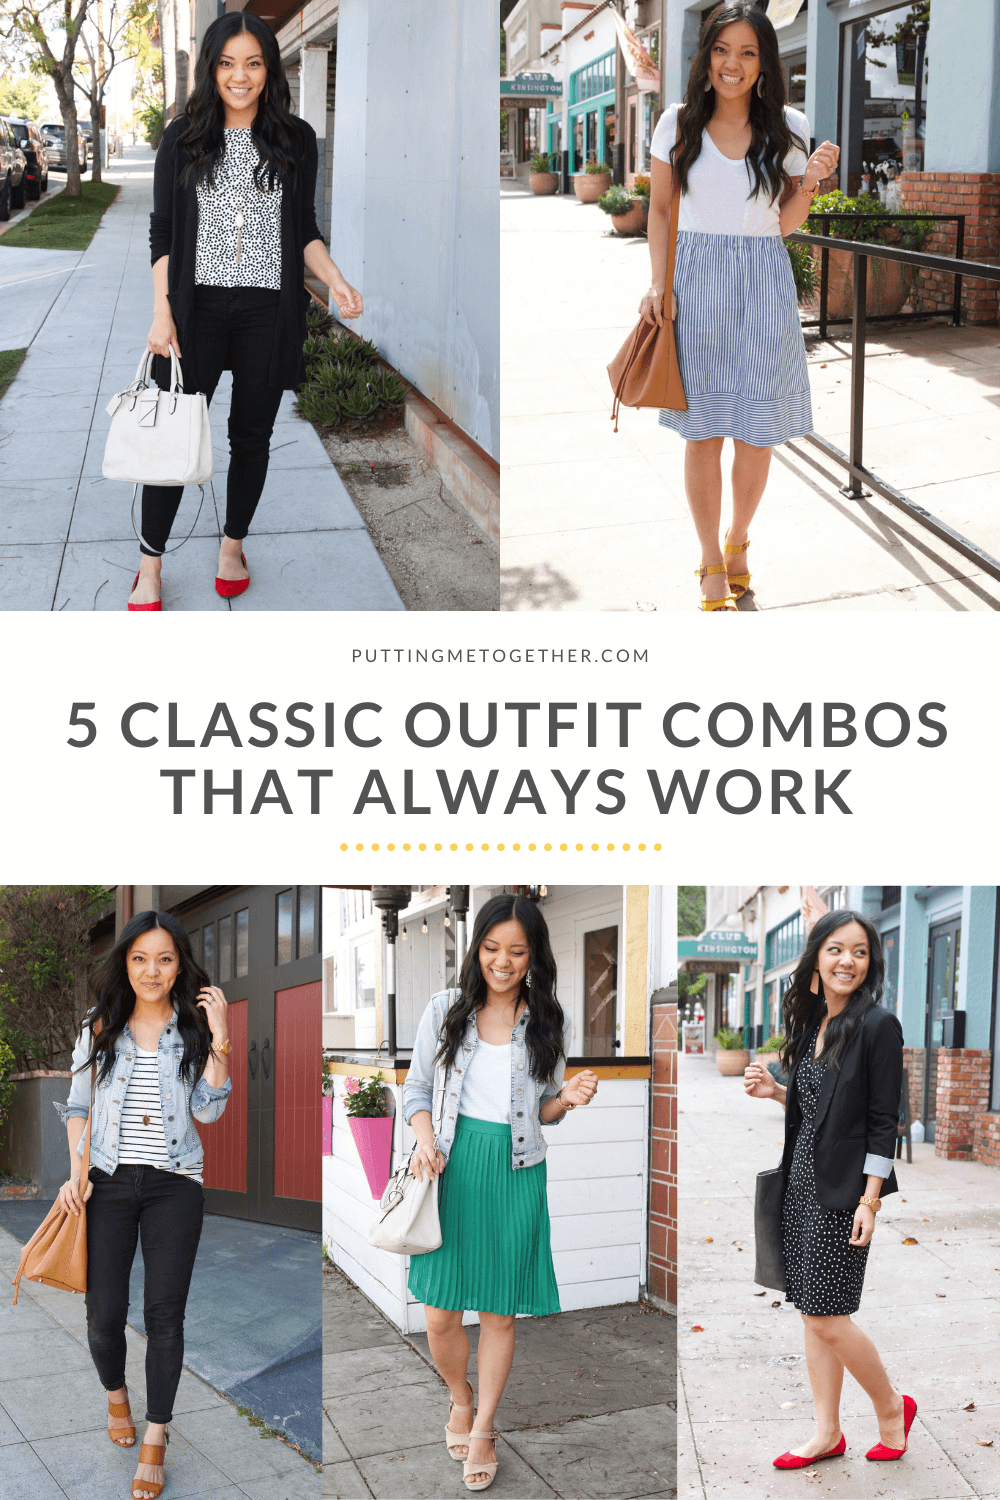 5 Classic Outfit Combos That Work All the Time